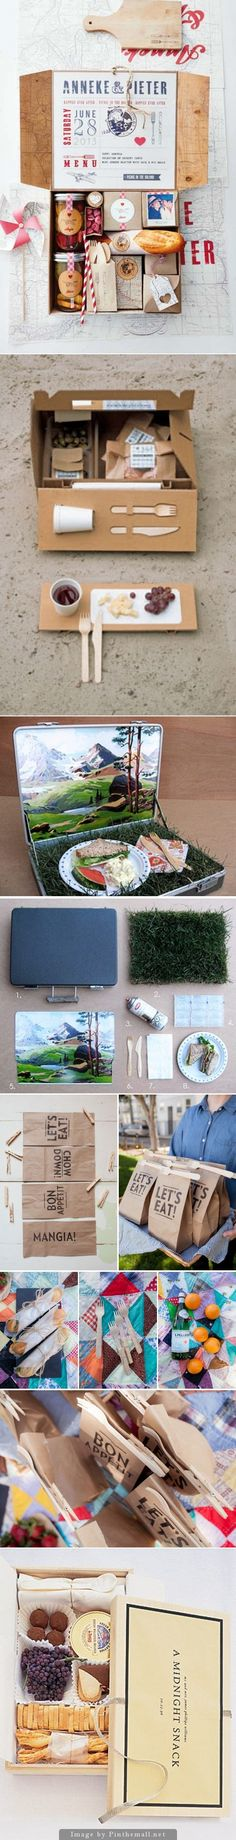 @Sarah Chintomby Chintomby Chintomby Reynolds Here you go lets go on a #picnic #packaging curated via Packaging Diva PD - created via http://pinterest.com/packagingdiva